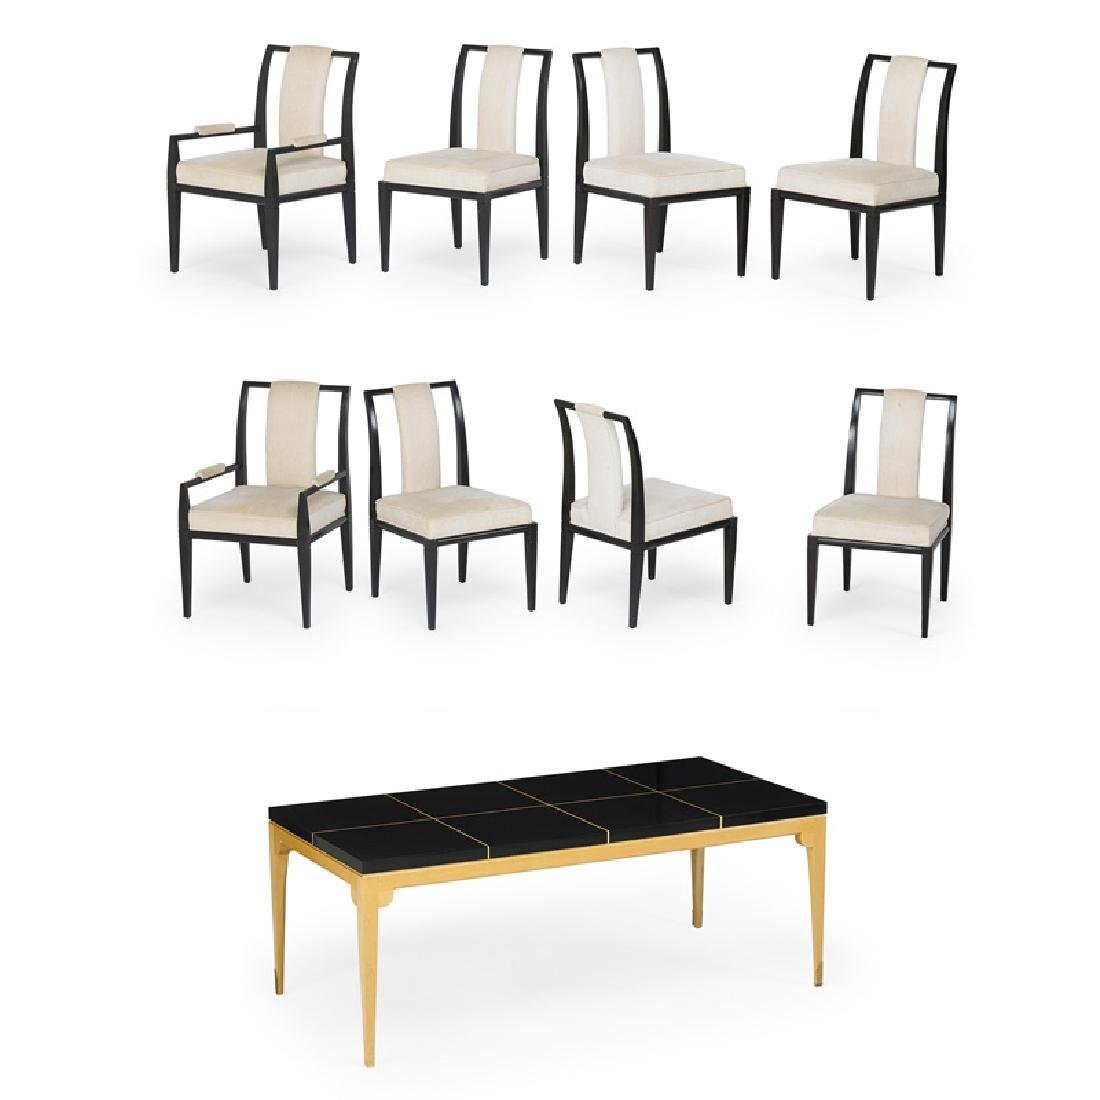 TOMMI PARZINGER Dining table and chairs